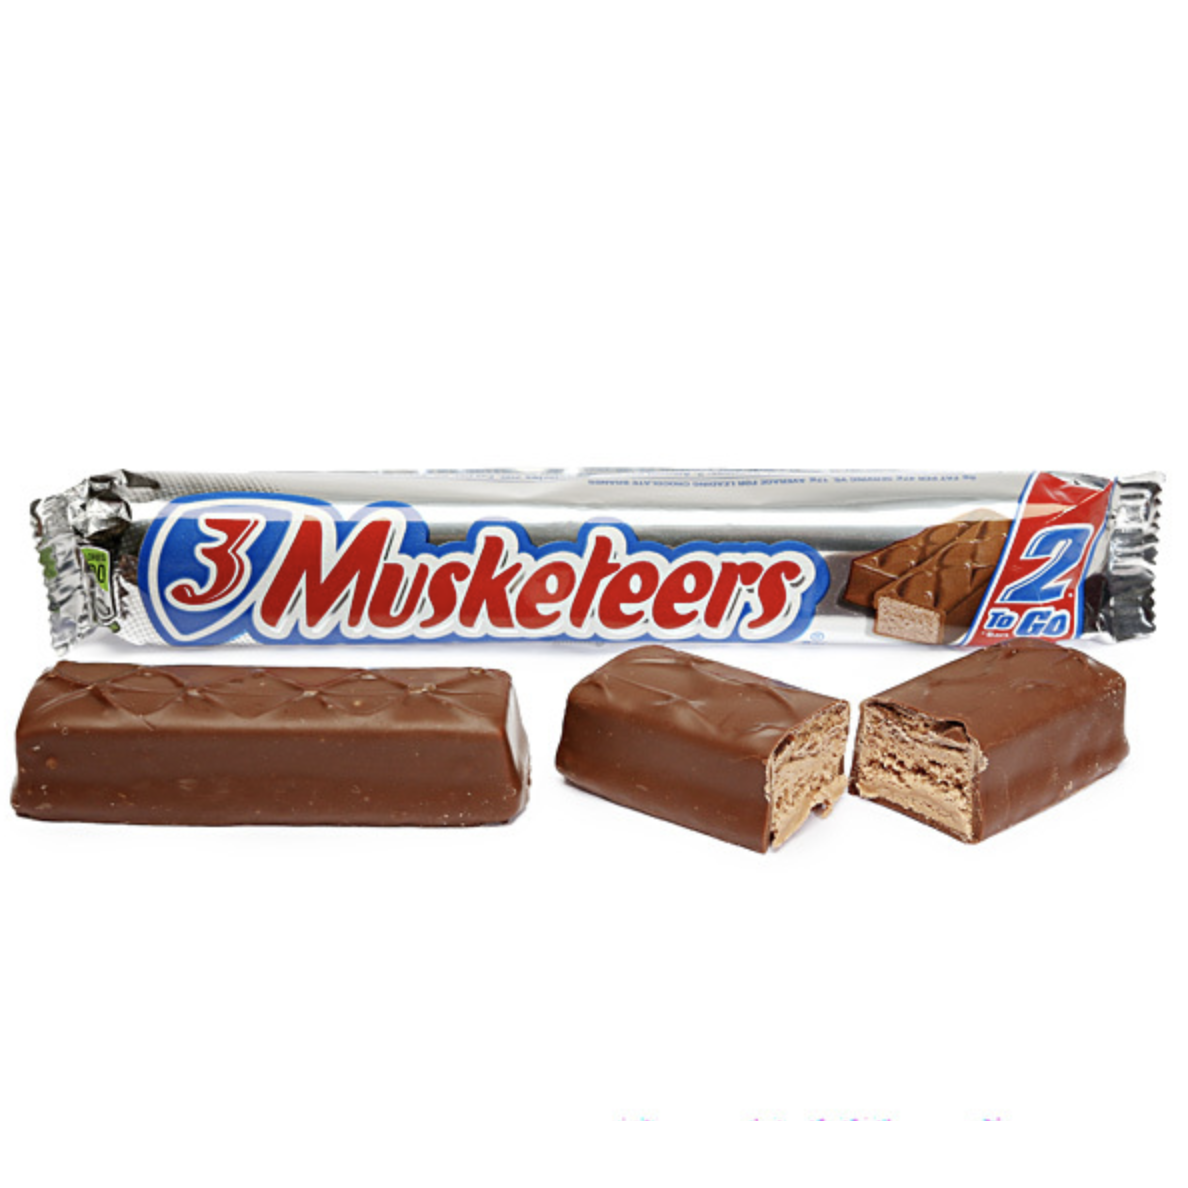 3 Musketeers Bar (King Size) (3.28oz) - A Taste of the States